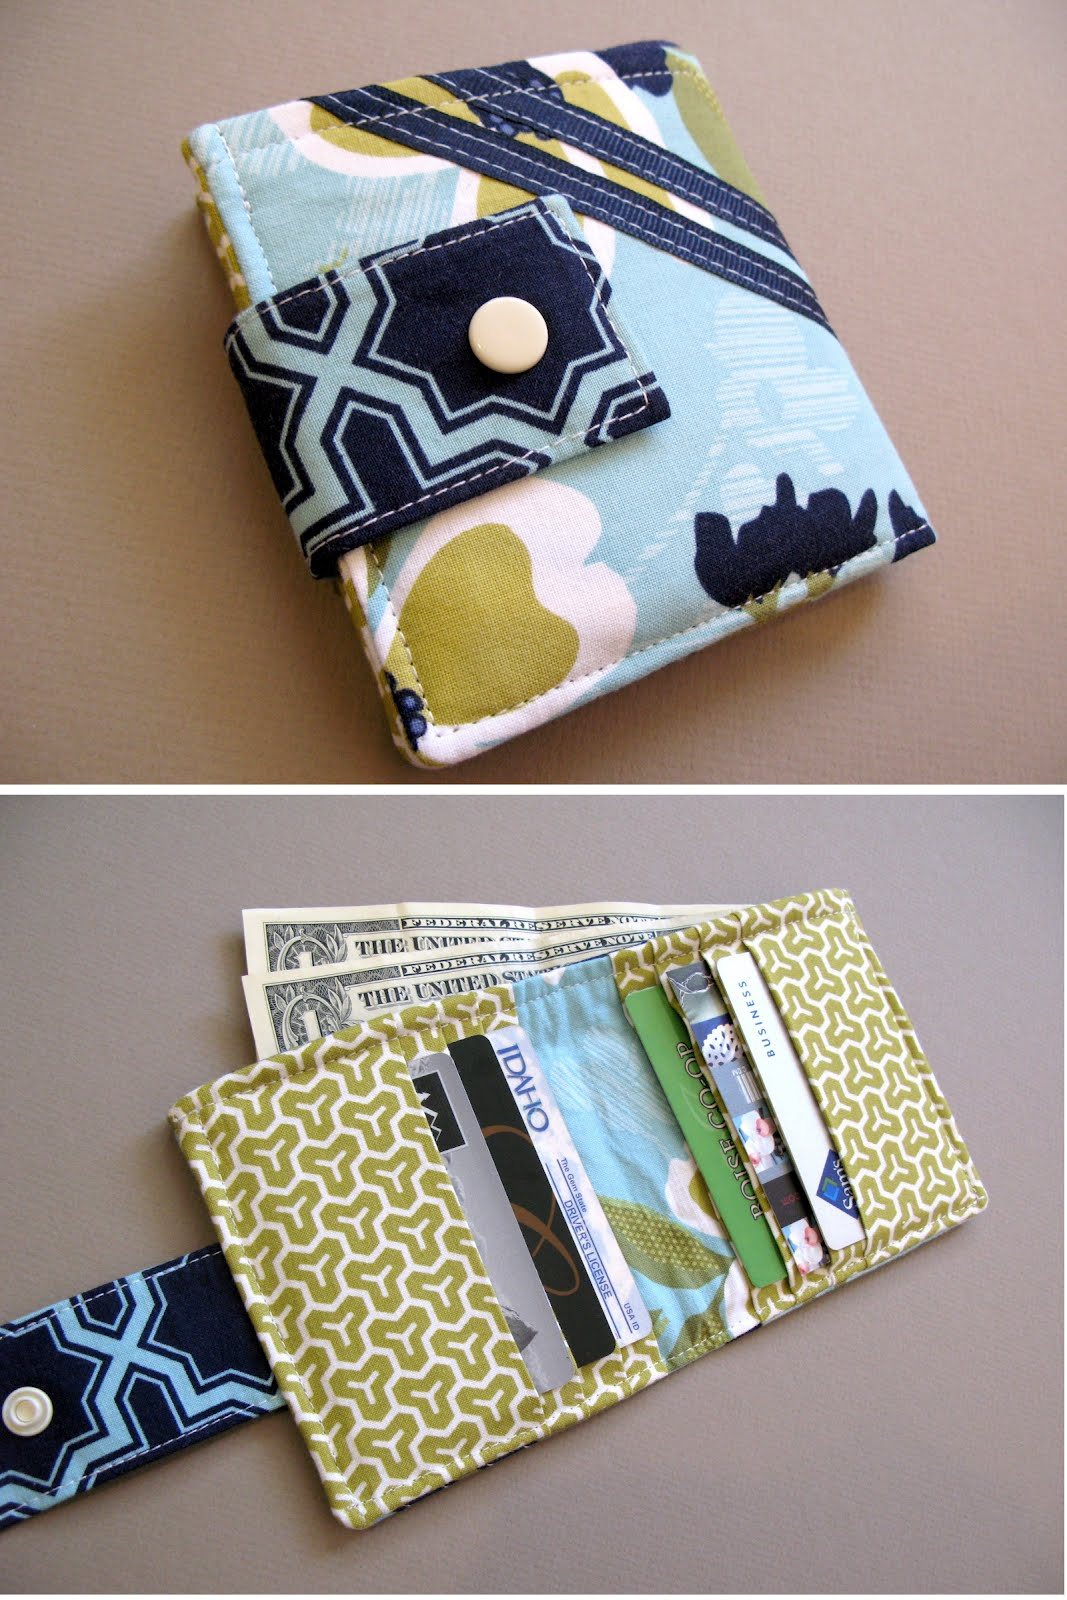 Modest maven bi fold wallet tutorial i wanted a wallet that carried a lot of cards with no risk of them sliding out as you can see the card slots face inward which means your cards will stay jeuxipadfo Image collections